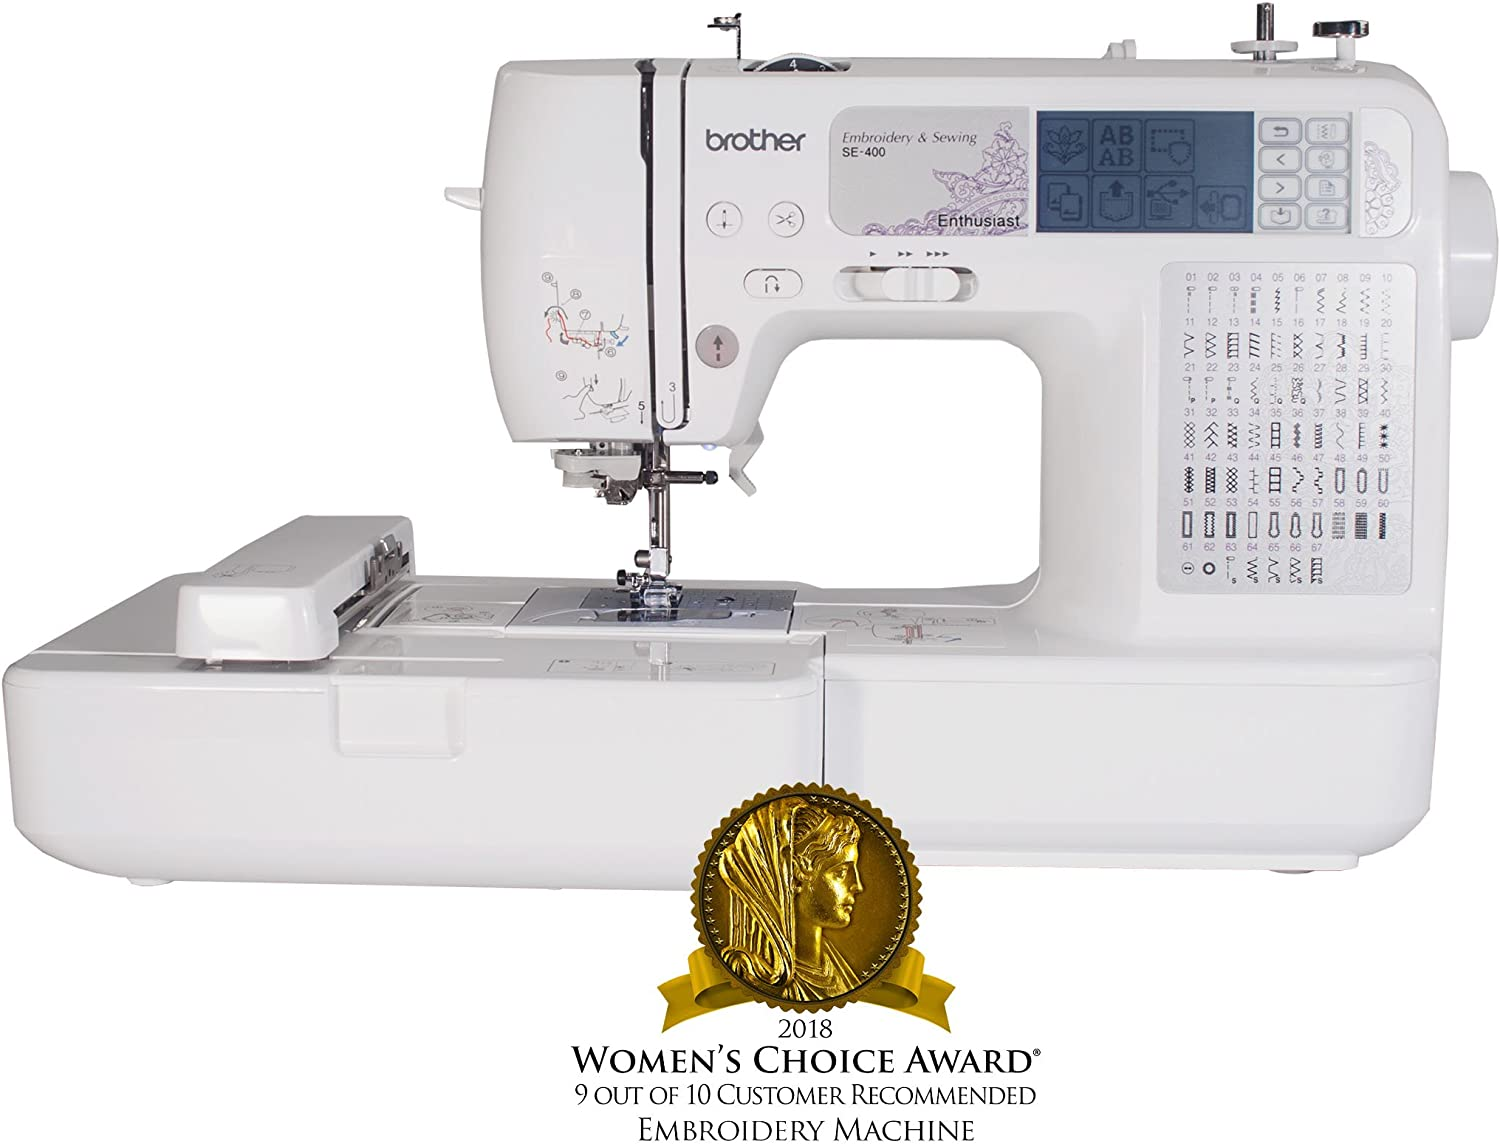 Top 8 Best Sewing Machine For Quilting Reviews in 2020 4